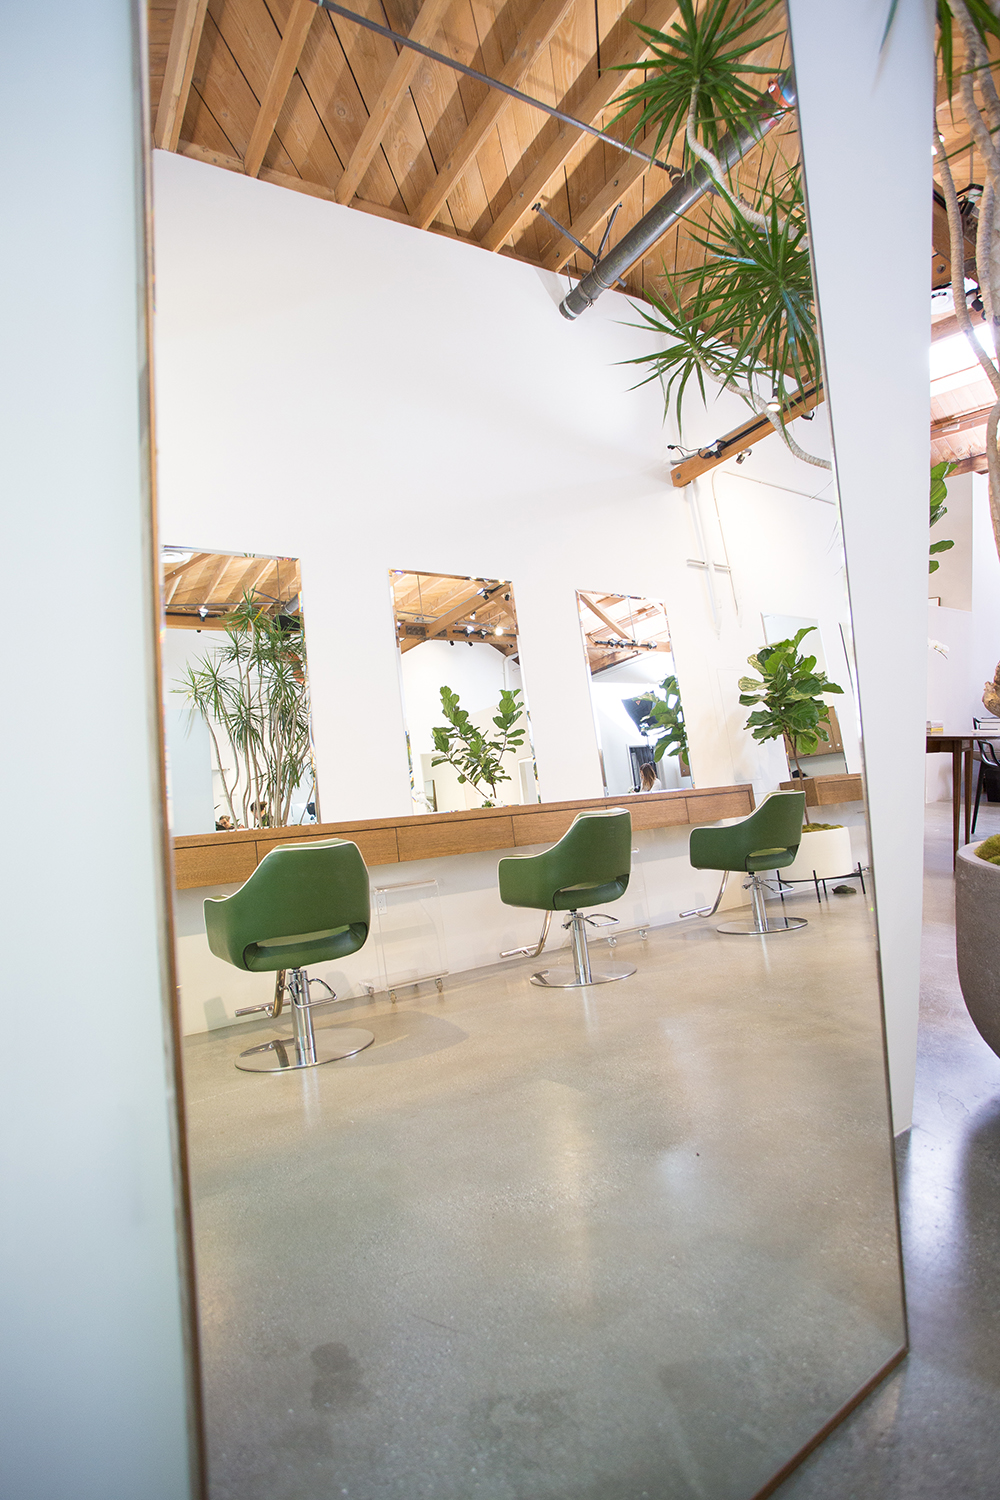 The salon's chic design features lots of natural light and open space.